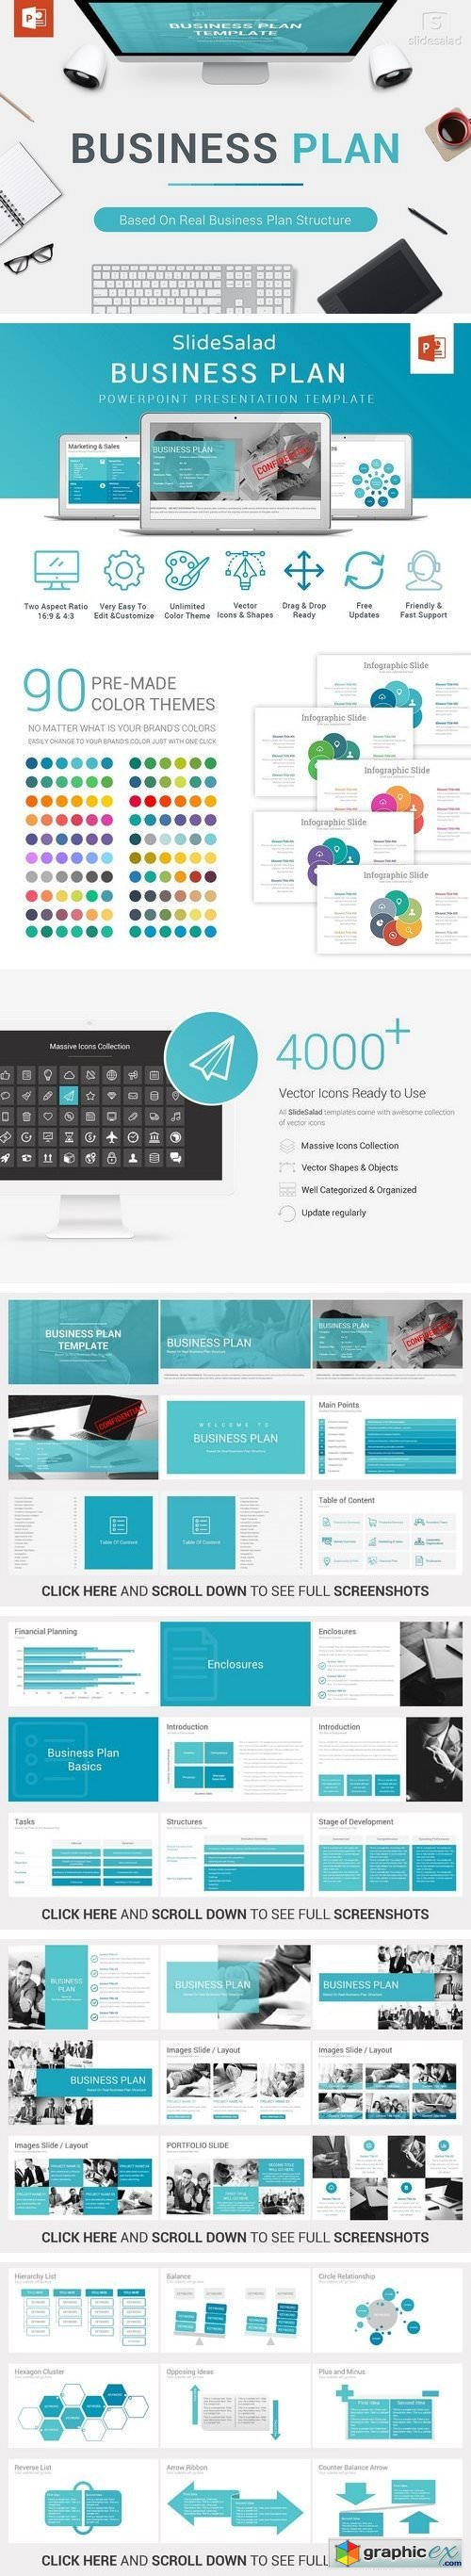 Business plan powerpoint template 1982832 free download vector business plan powerpoint template 1982832 toneelgroepblik Choice Image